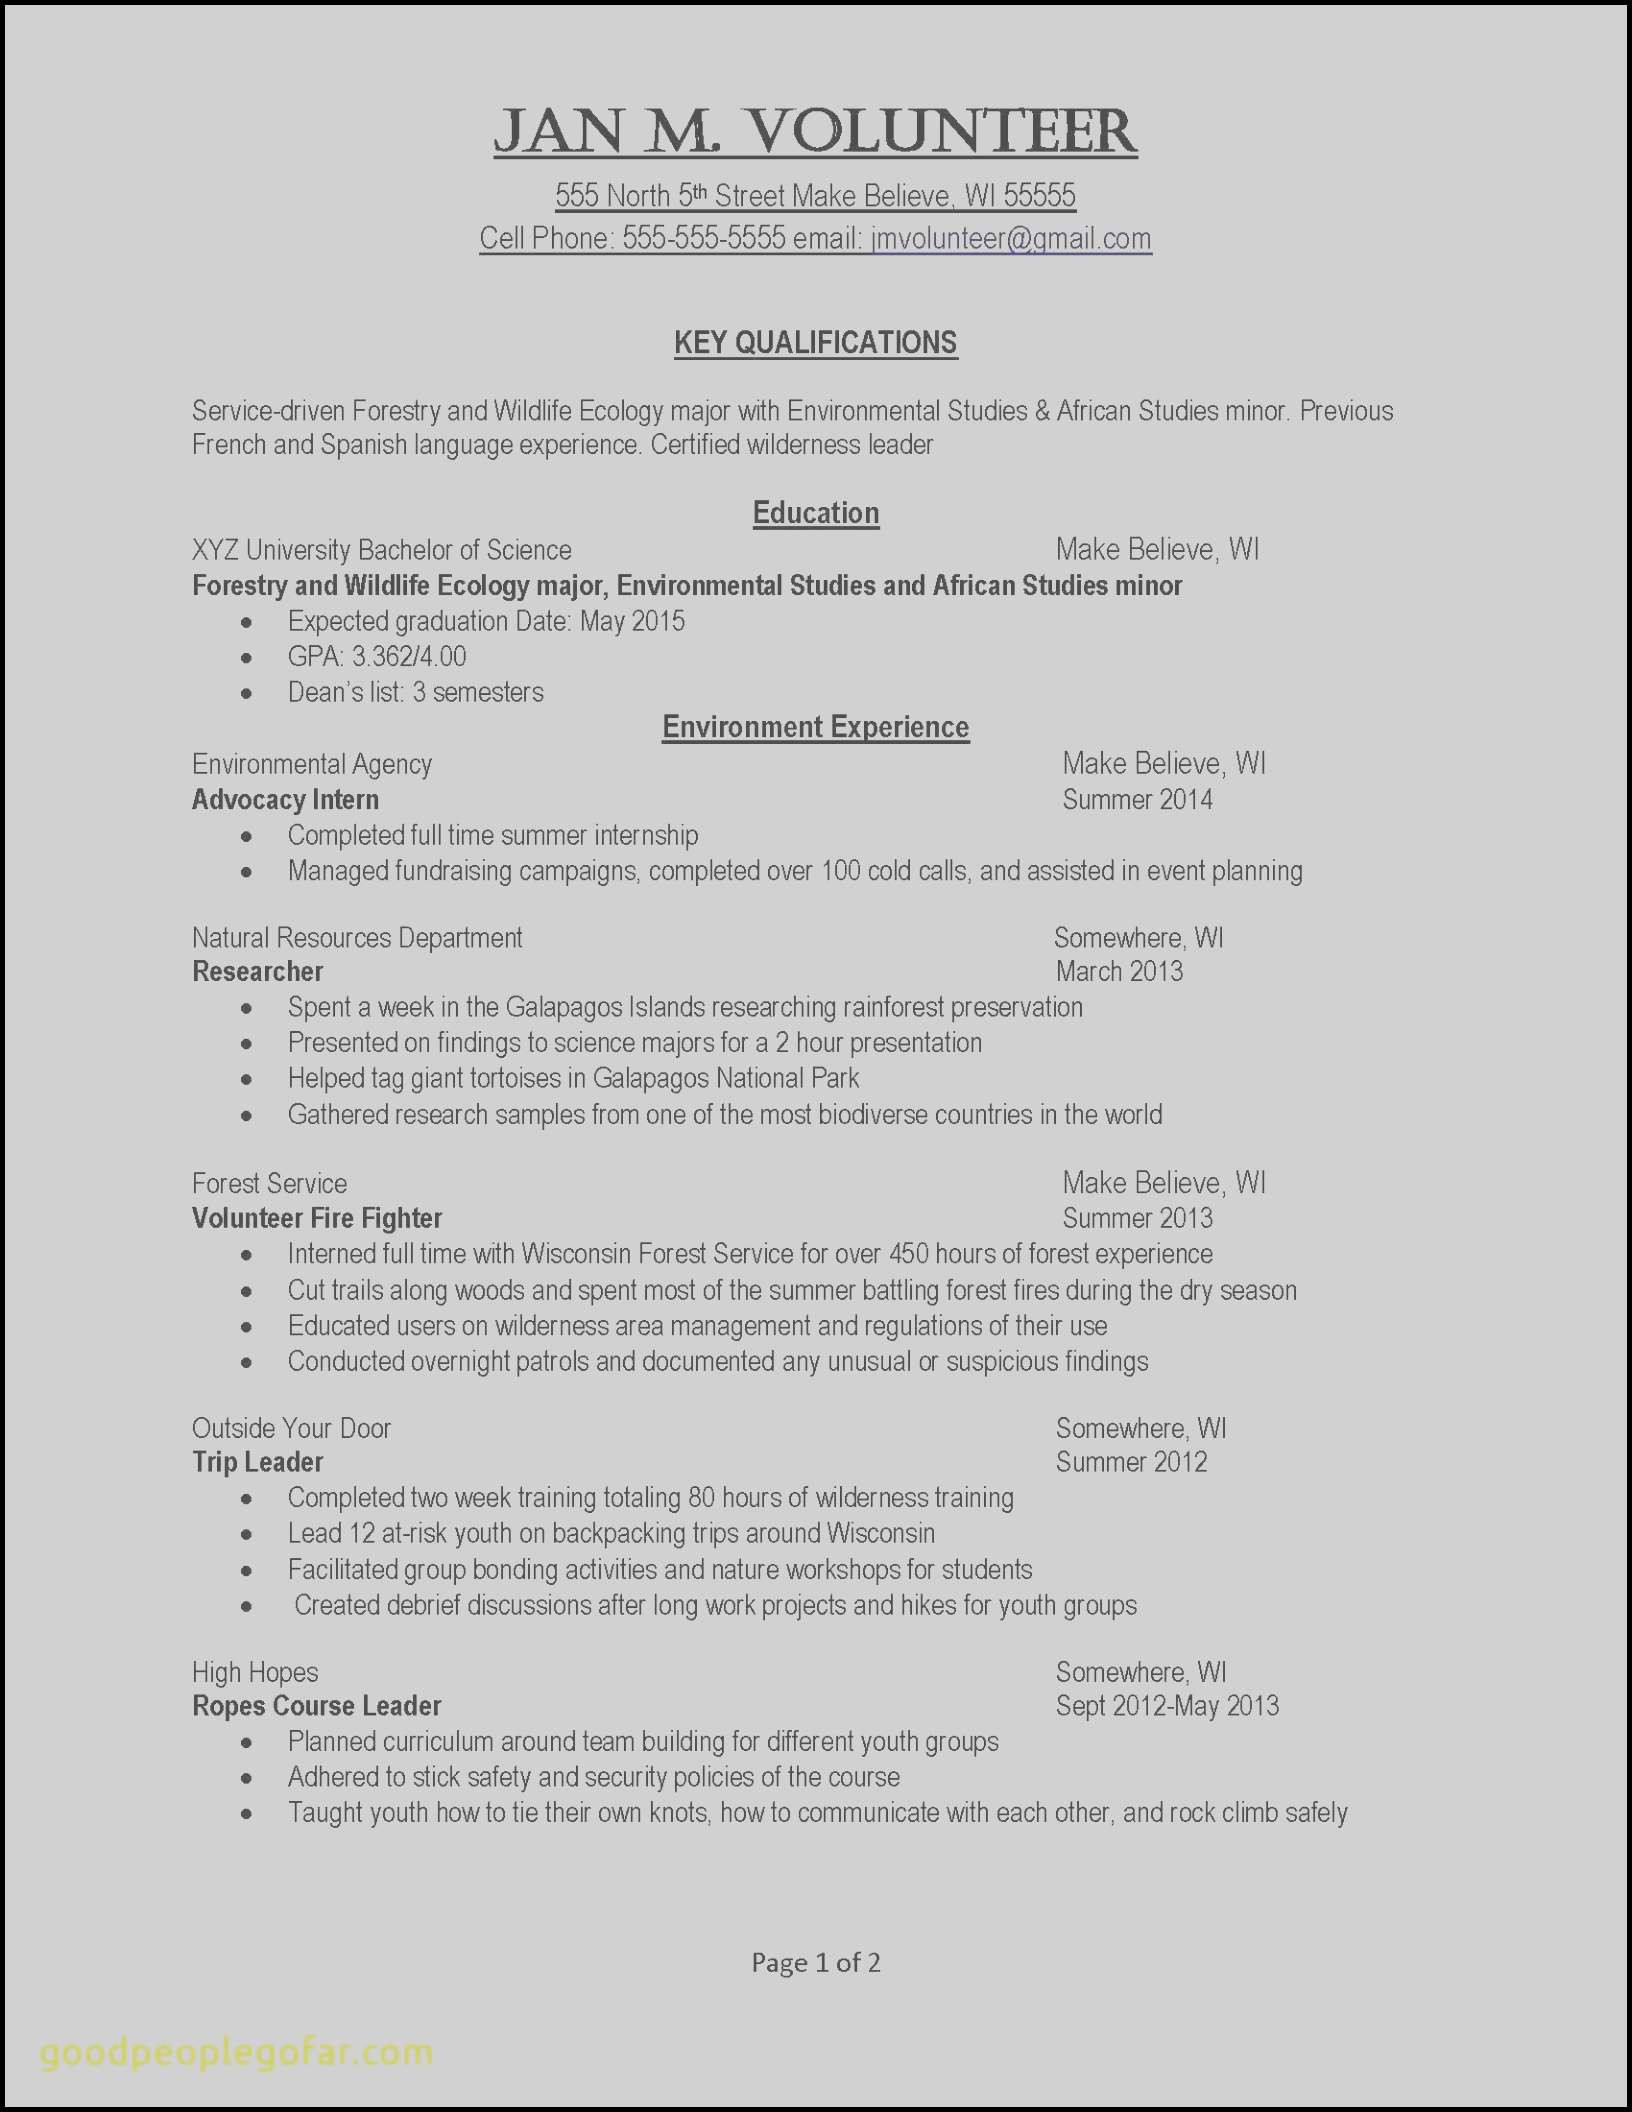 Copy and Paste Resume Templates - Resume Examples for Warehouse Position Recent Example Job Resume